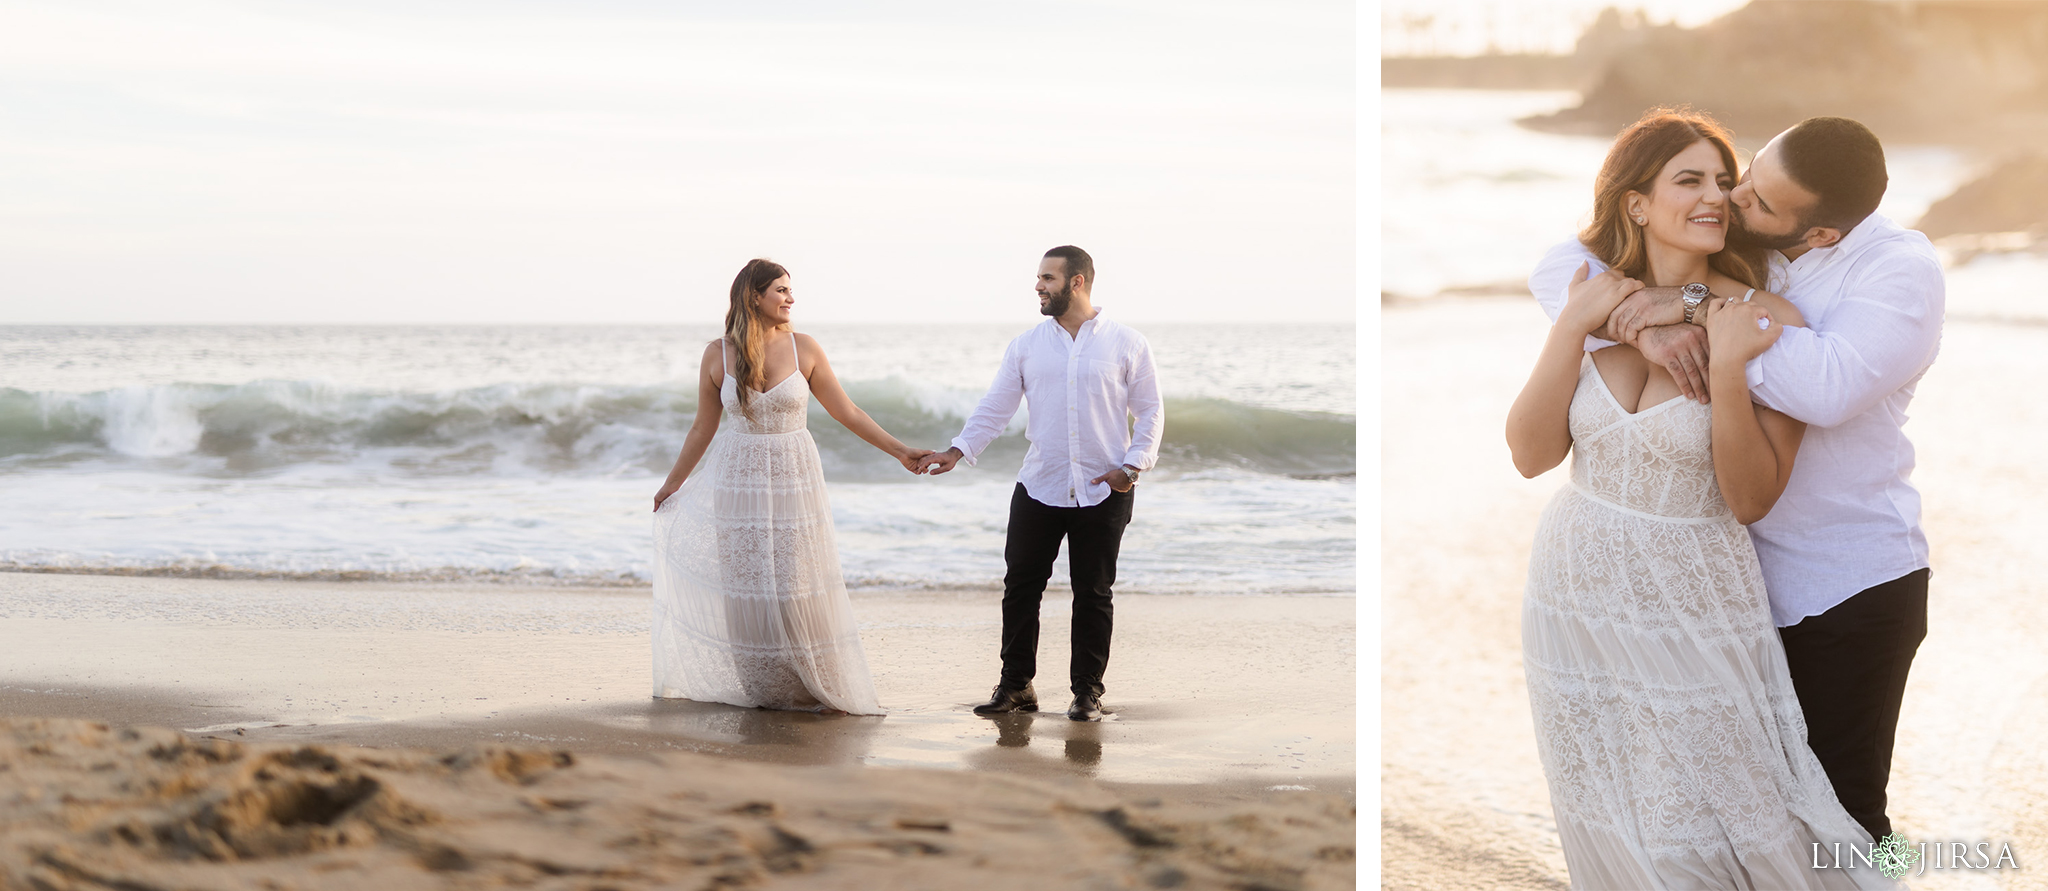 24 Heisler Beach Orange County Engagement Photography